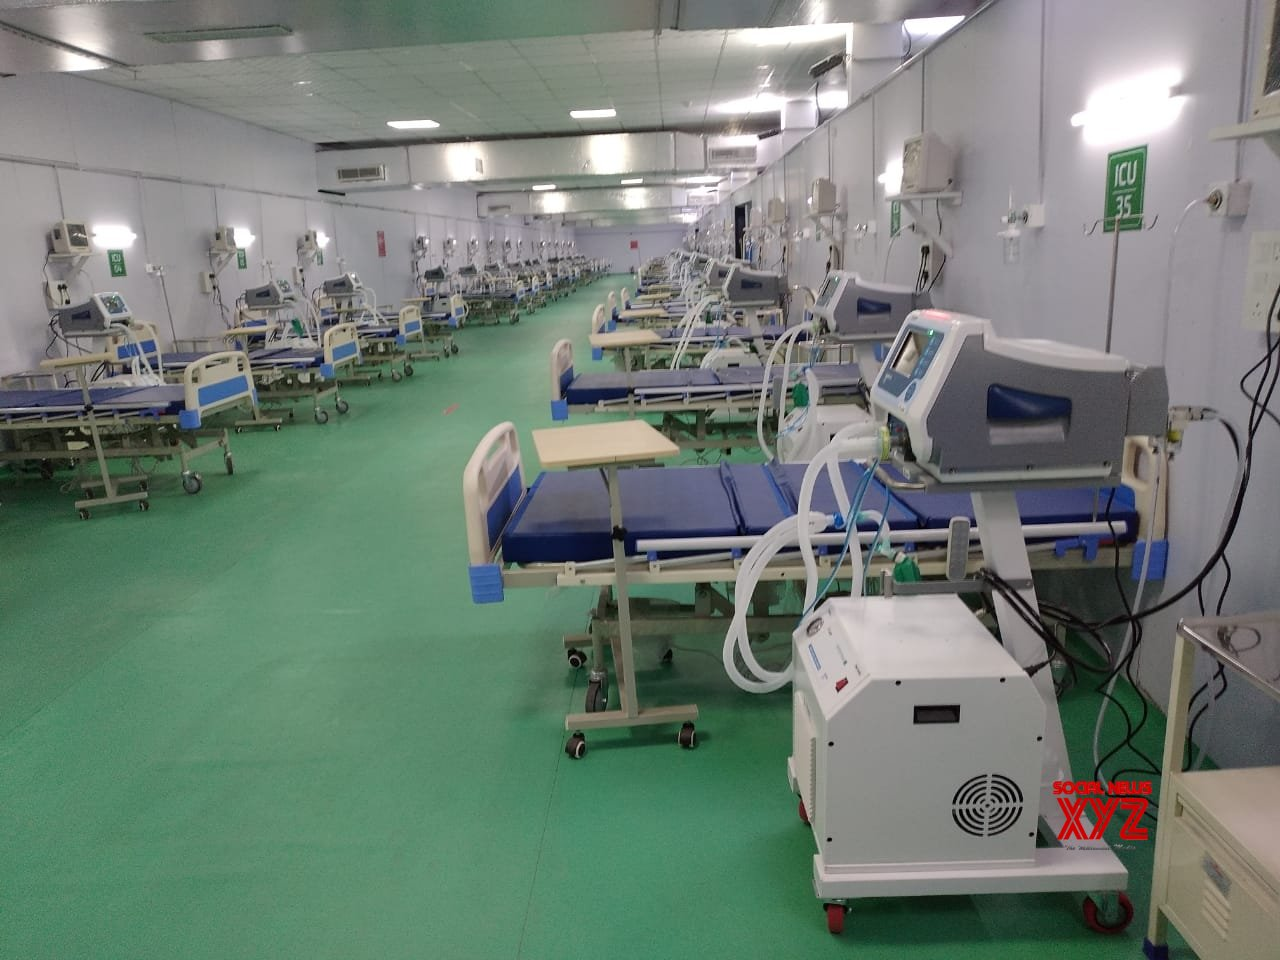 J&K: The Lieutenant Governor of Jammu and Kashmir, Manoj Sinha, on Wednesday inaugurated a 500 - bed Covid hospital set up by the Defence Research and Development Organisation in Srinagar. #Gallery